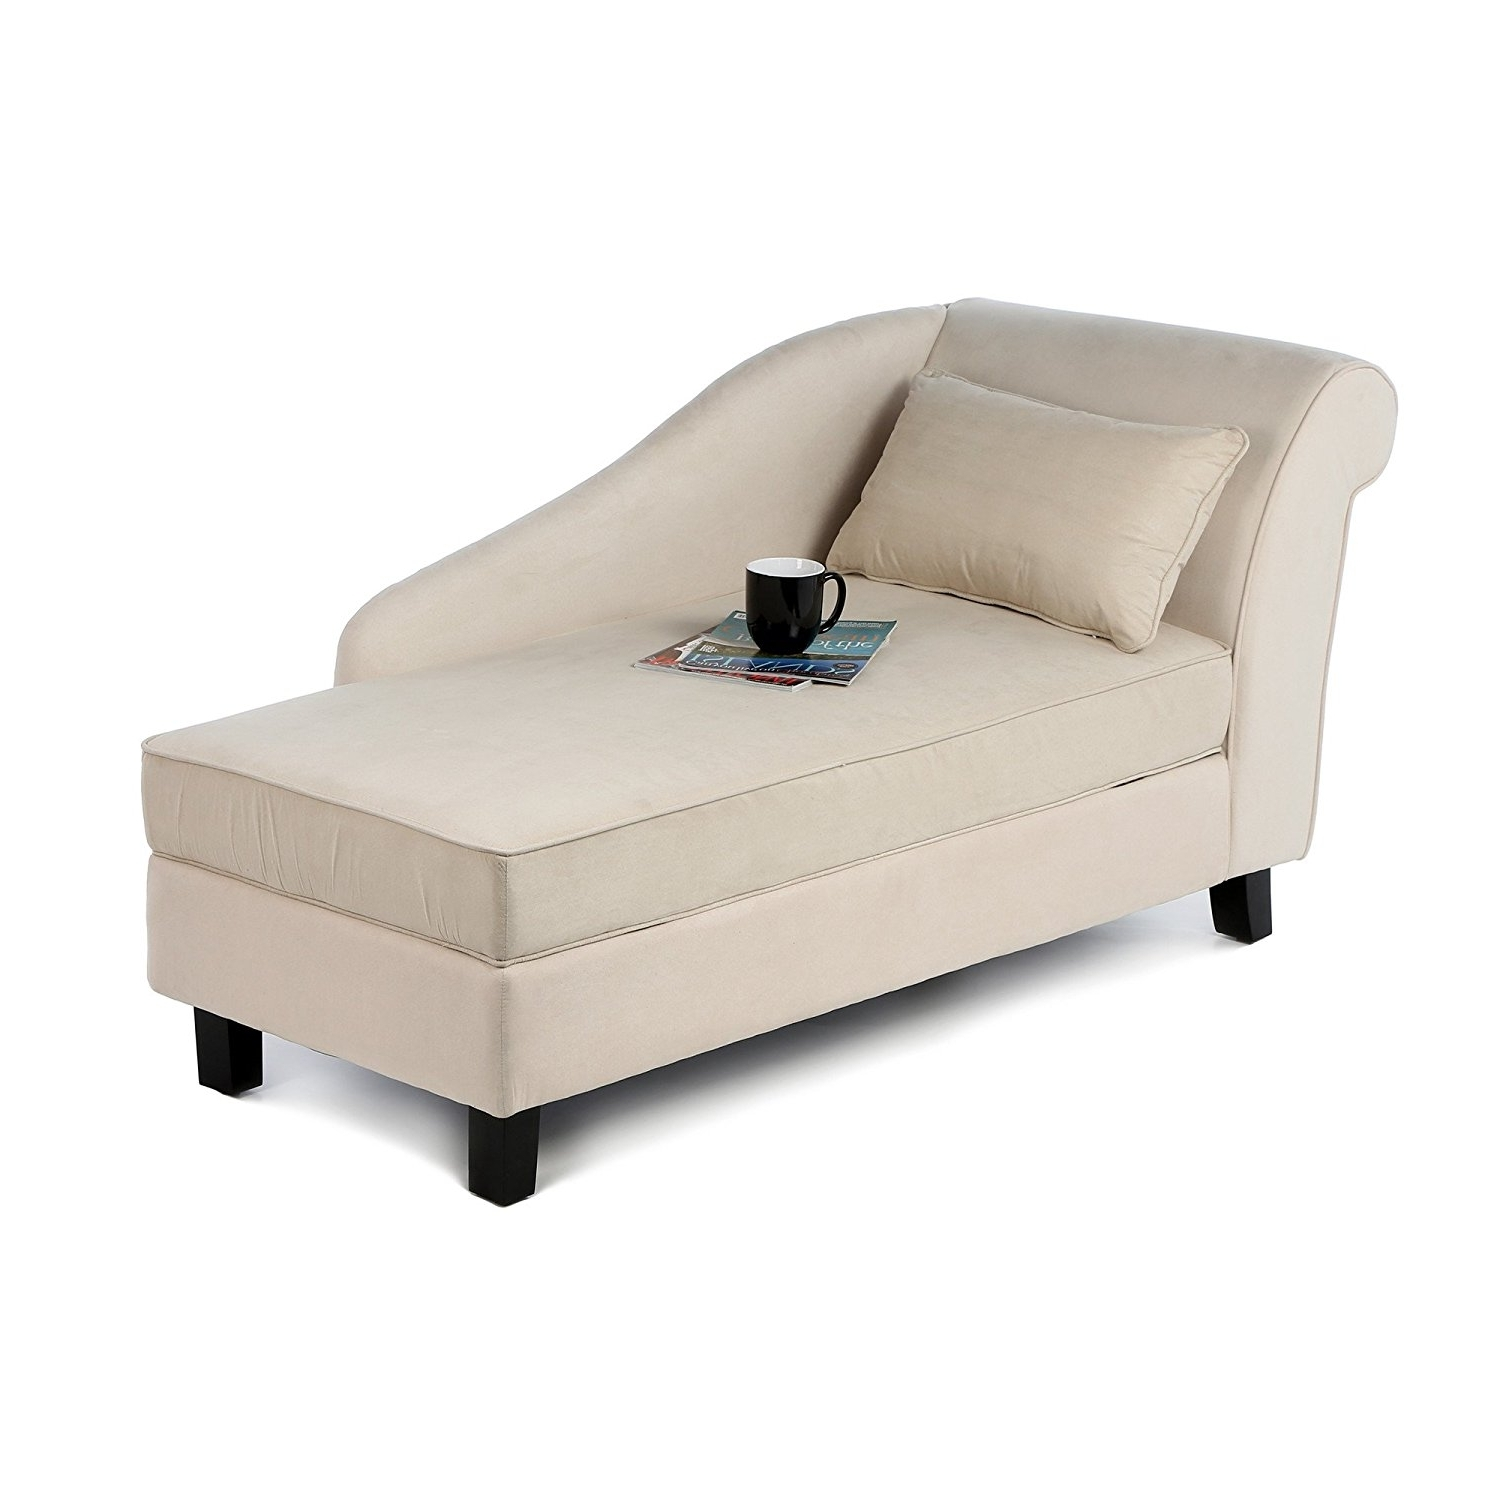 Amazon: Castleton Home Storage Chaise Lounge Modern Long Chair Within 2017 Chaise Lounges With Storage (View 4 of 15)